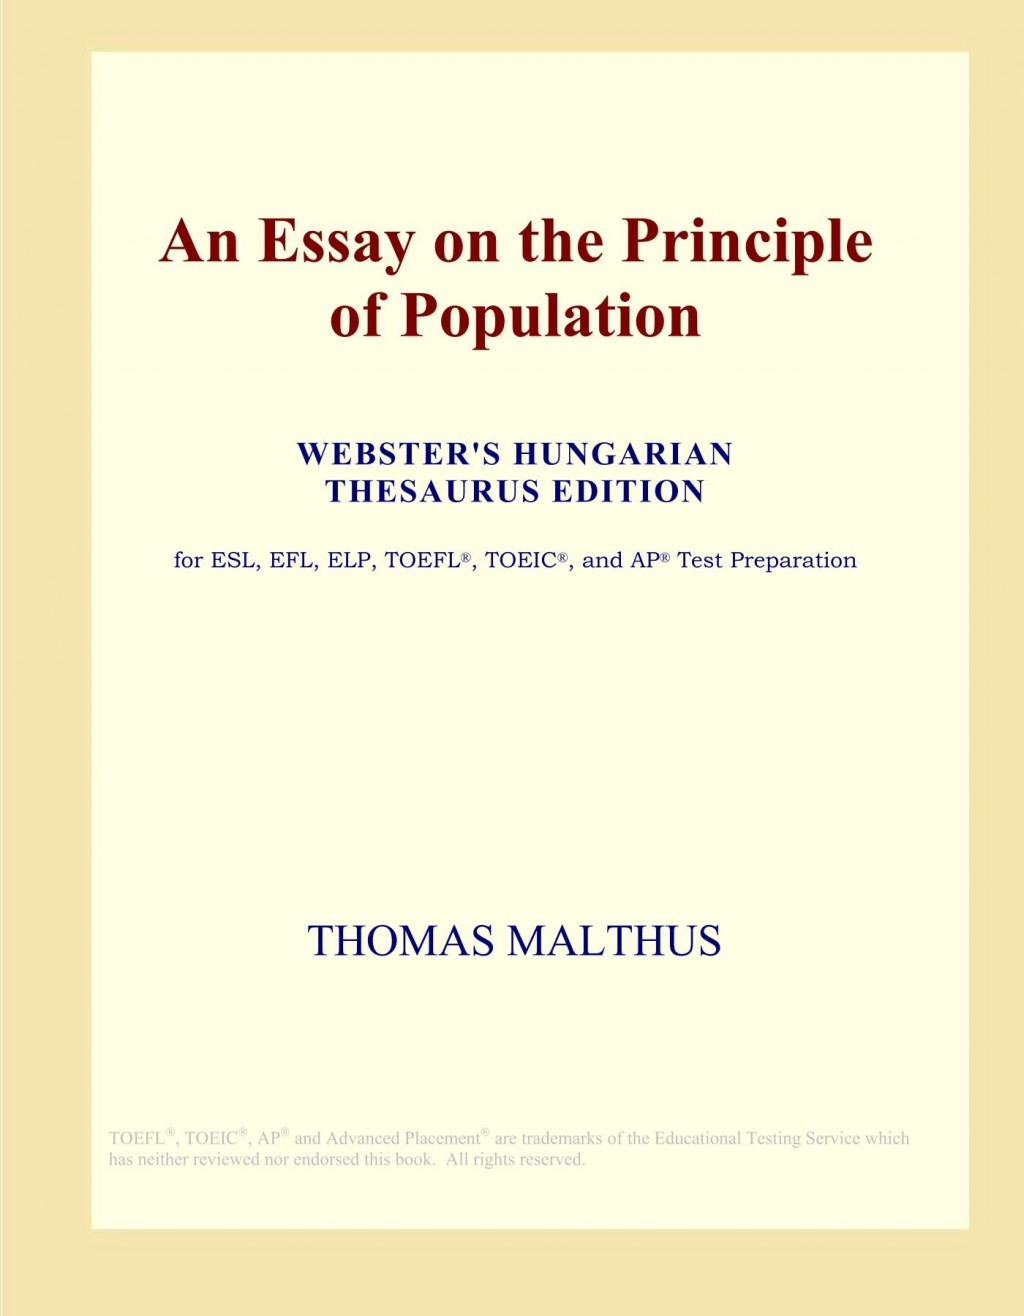 006 717hprqxqul An Essay On The Principle Of Population Fascinating By Thomas Malthus Pdf In Concluded Which Following Large